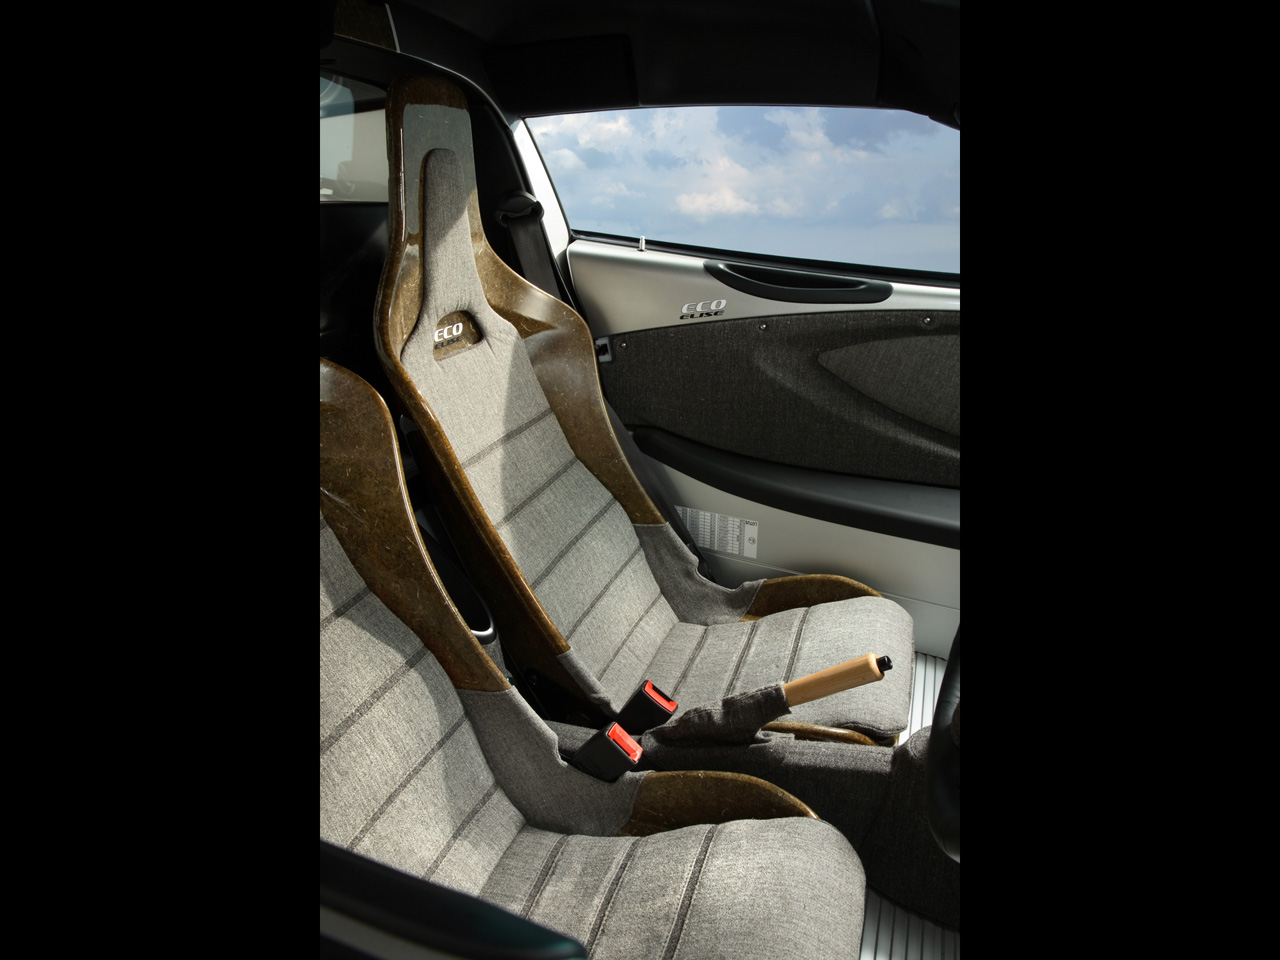 2008-Lotus-Eco-Elise-Seating-1280x960.jpg